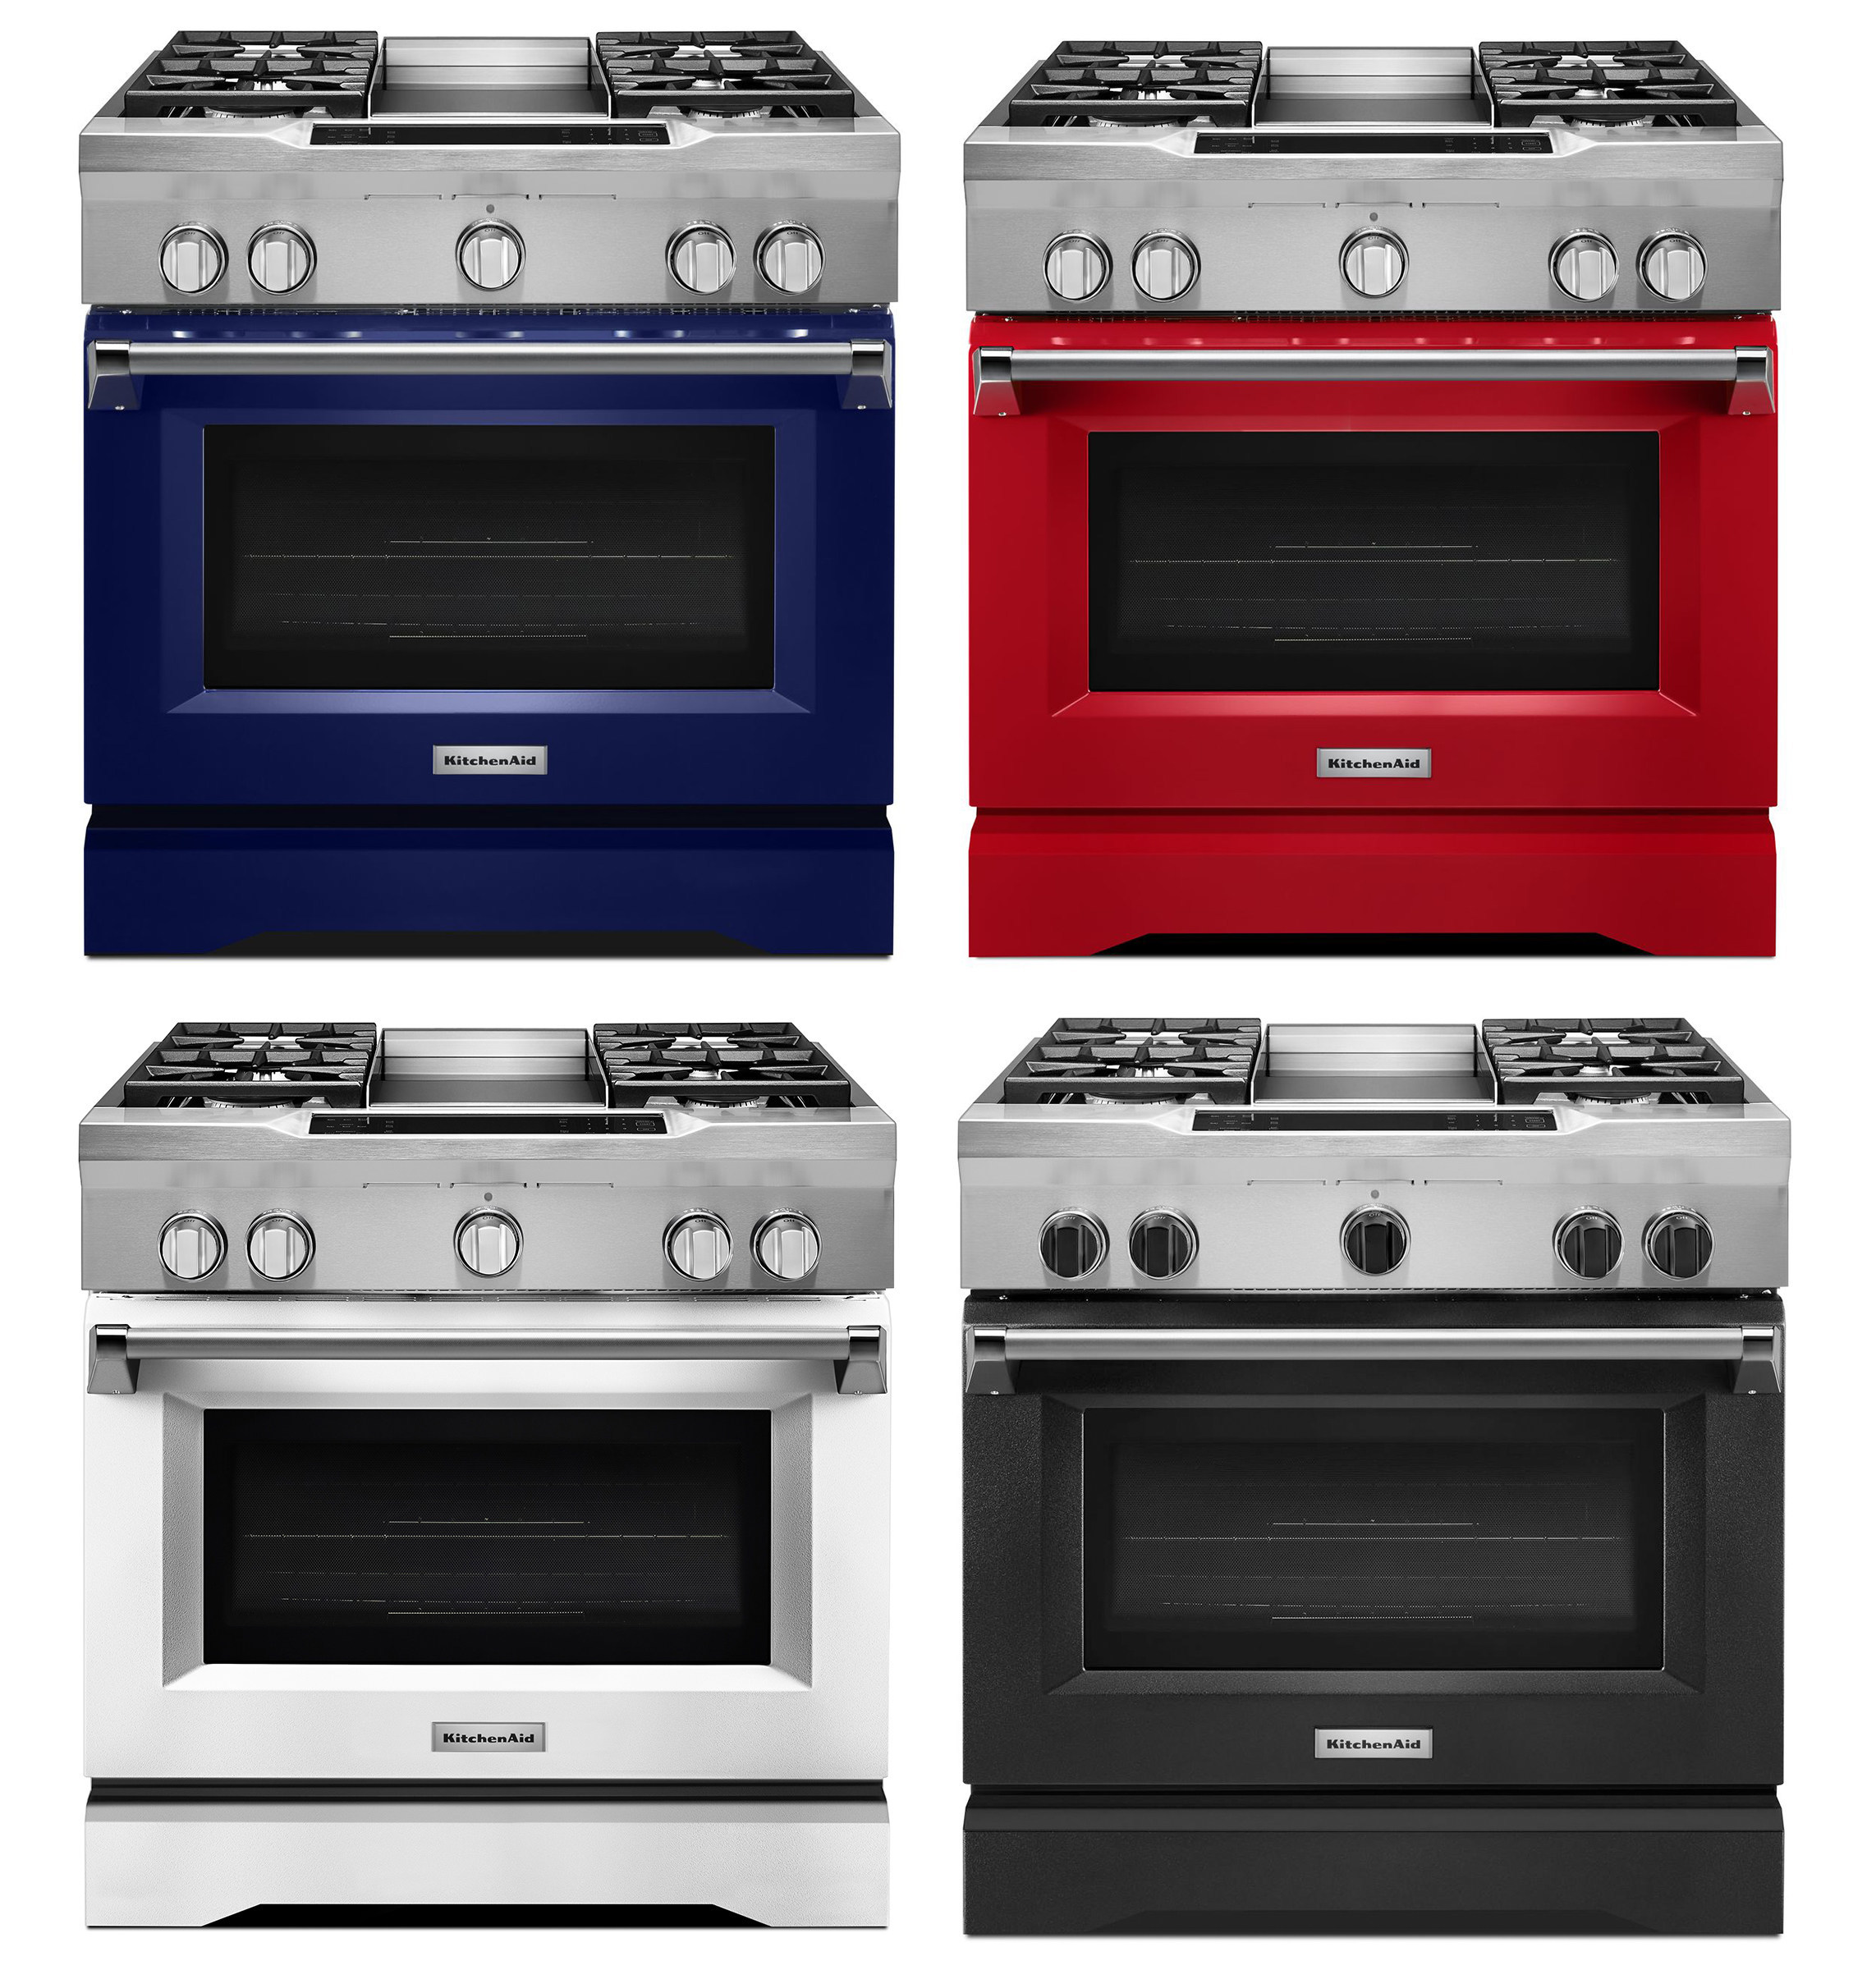 KitchenAid Brings Signature Colors To Commercial-Style Ranges